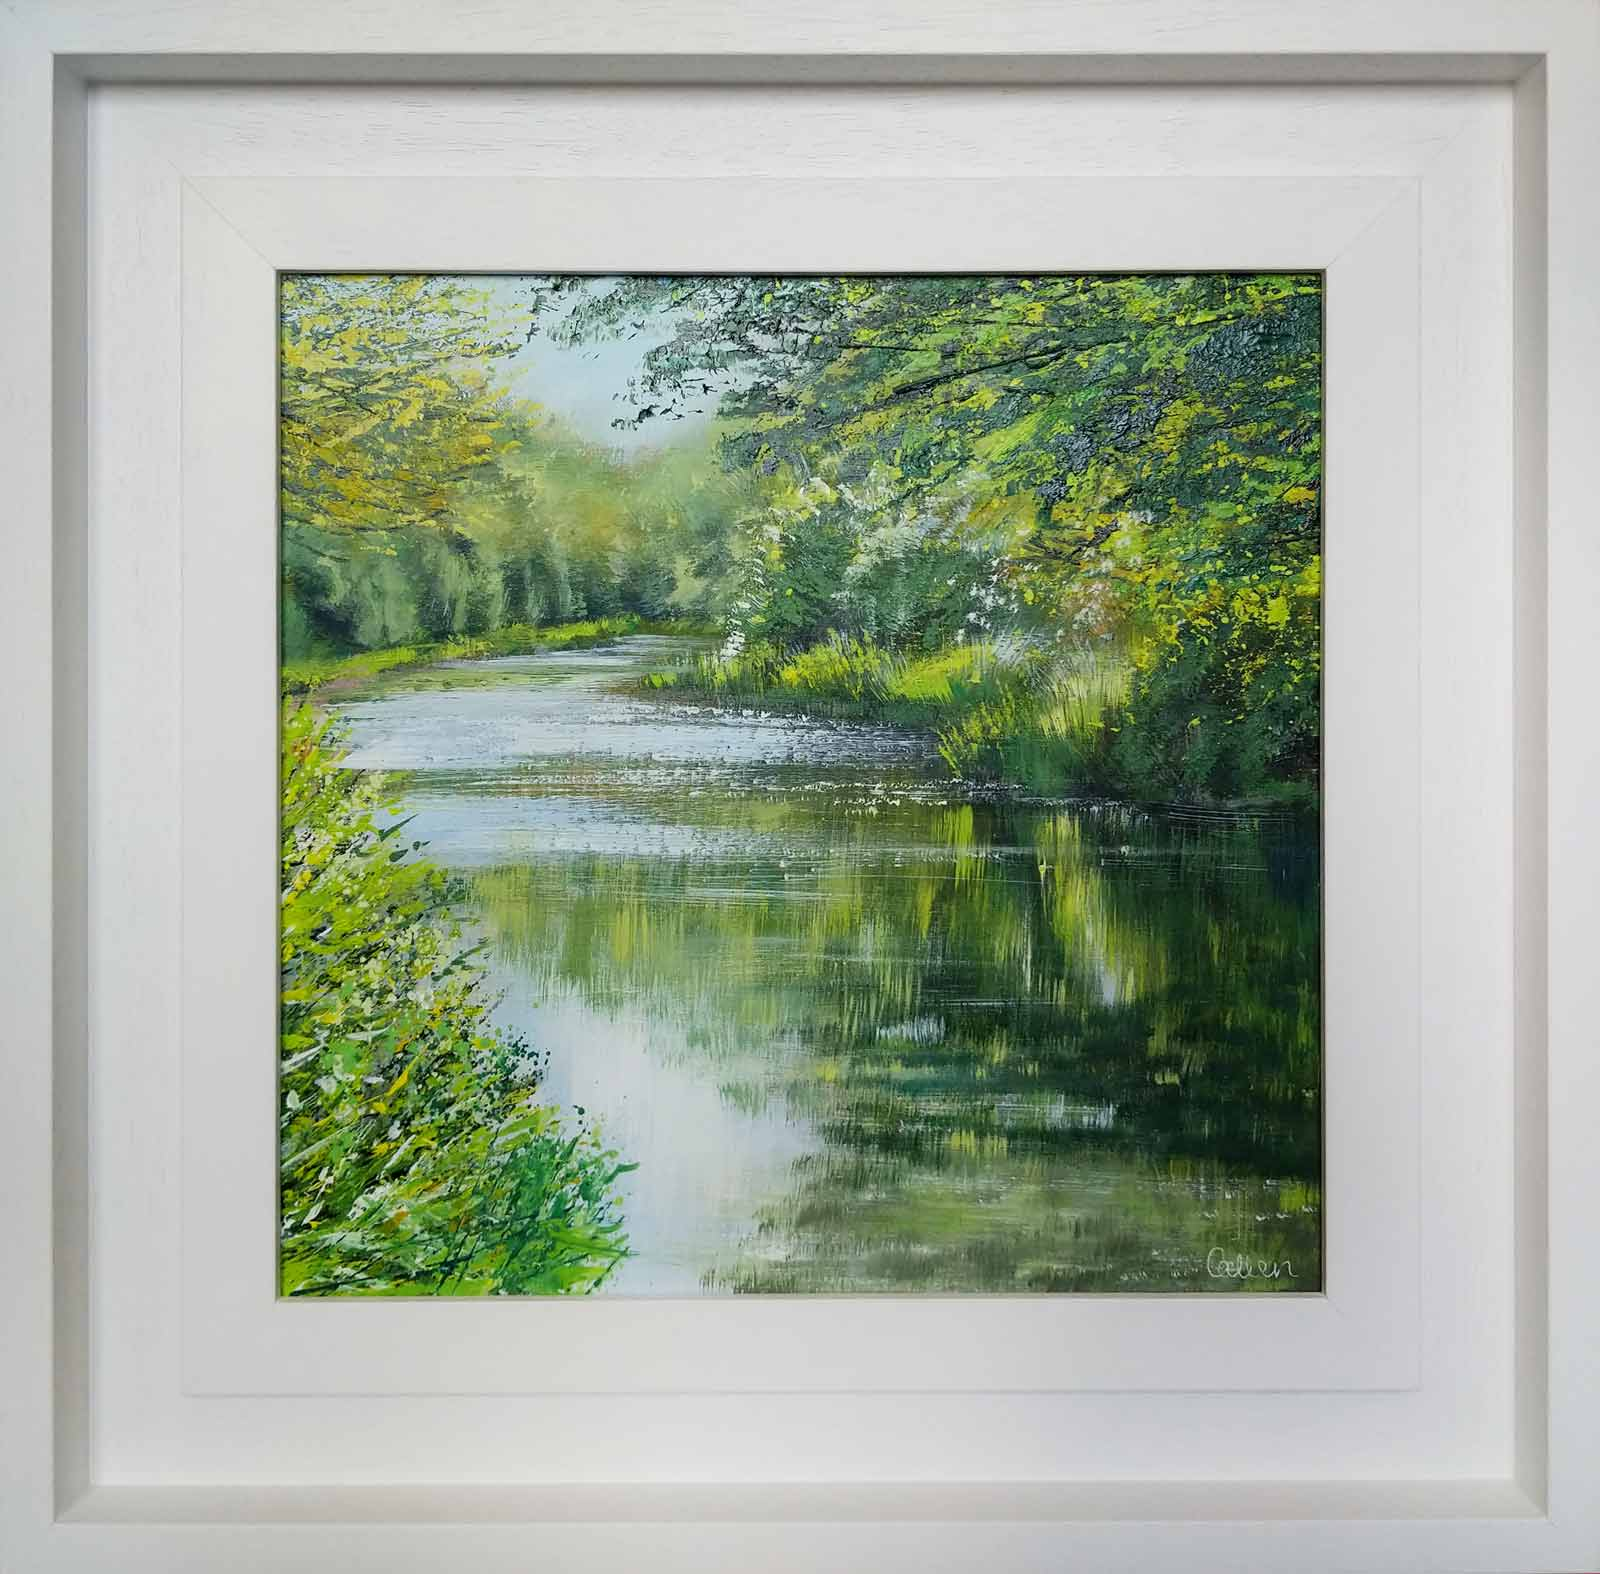 Dancing Light, River Wey, Grace Ellen